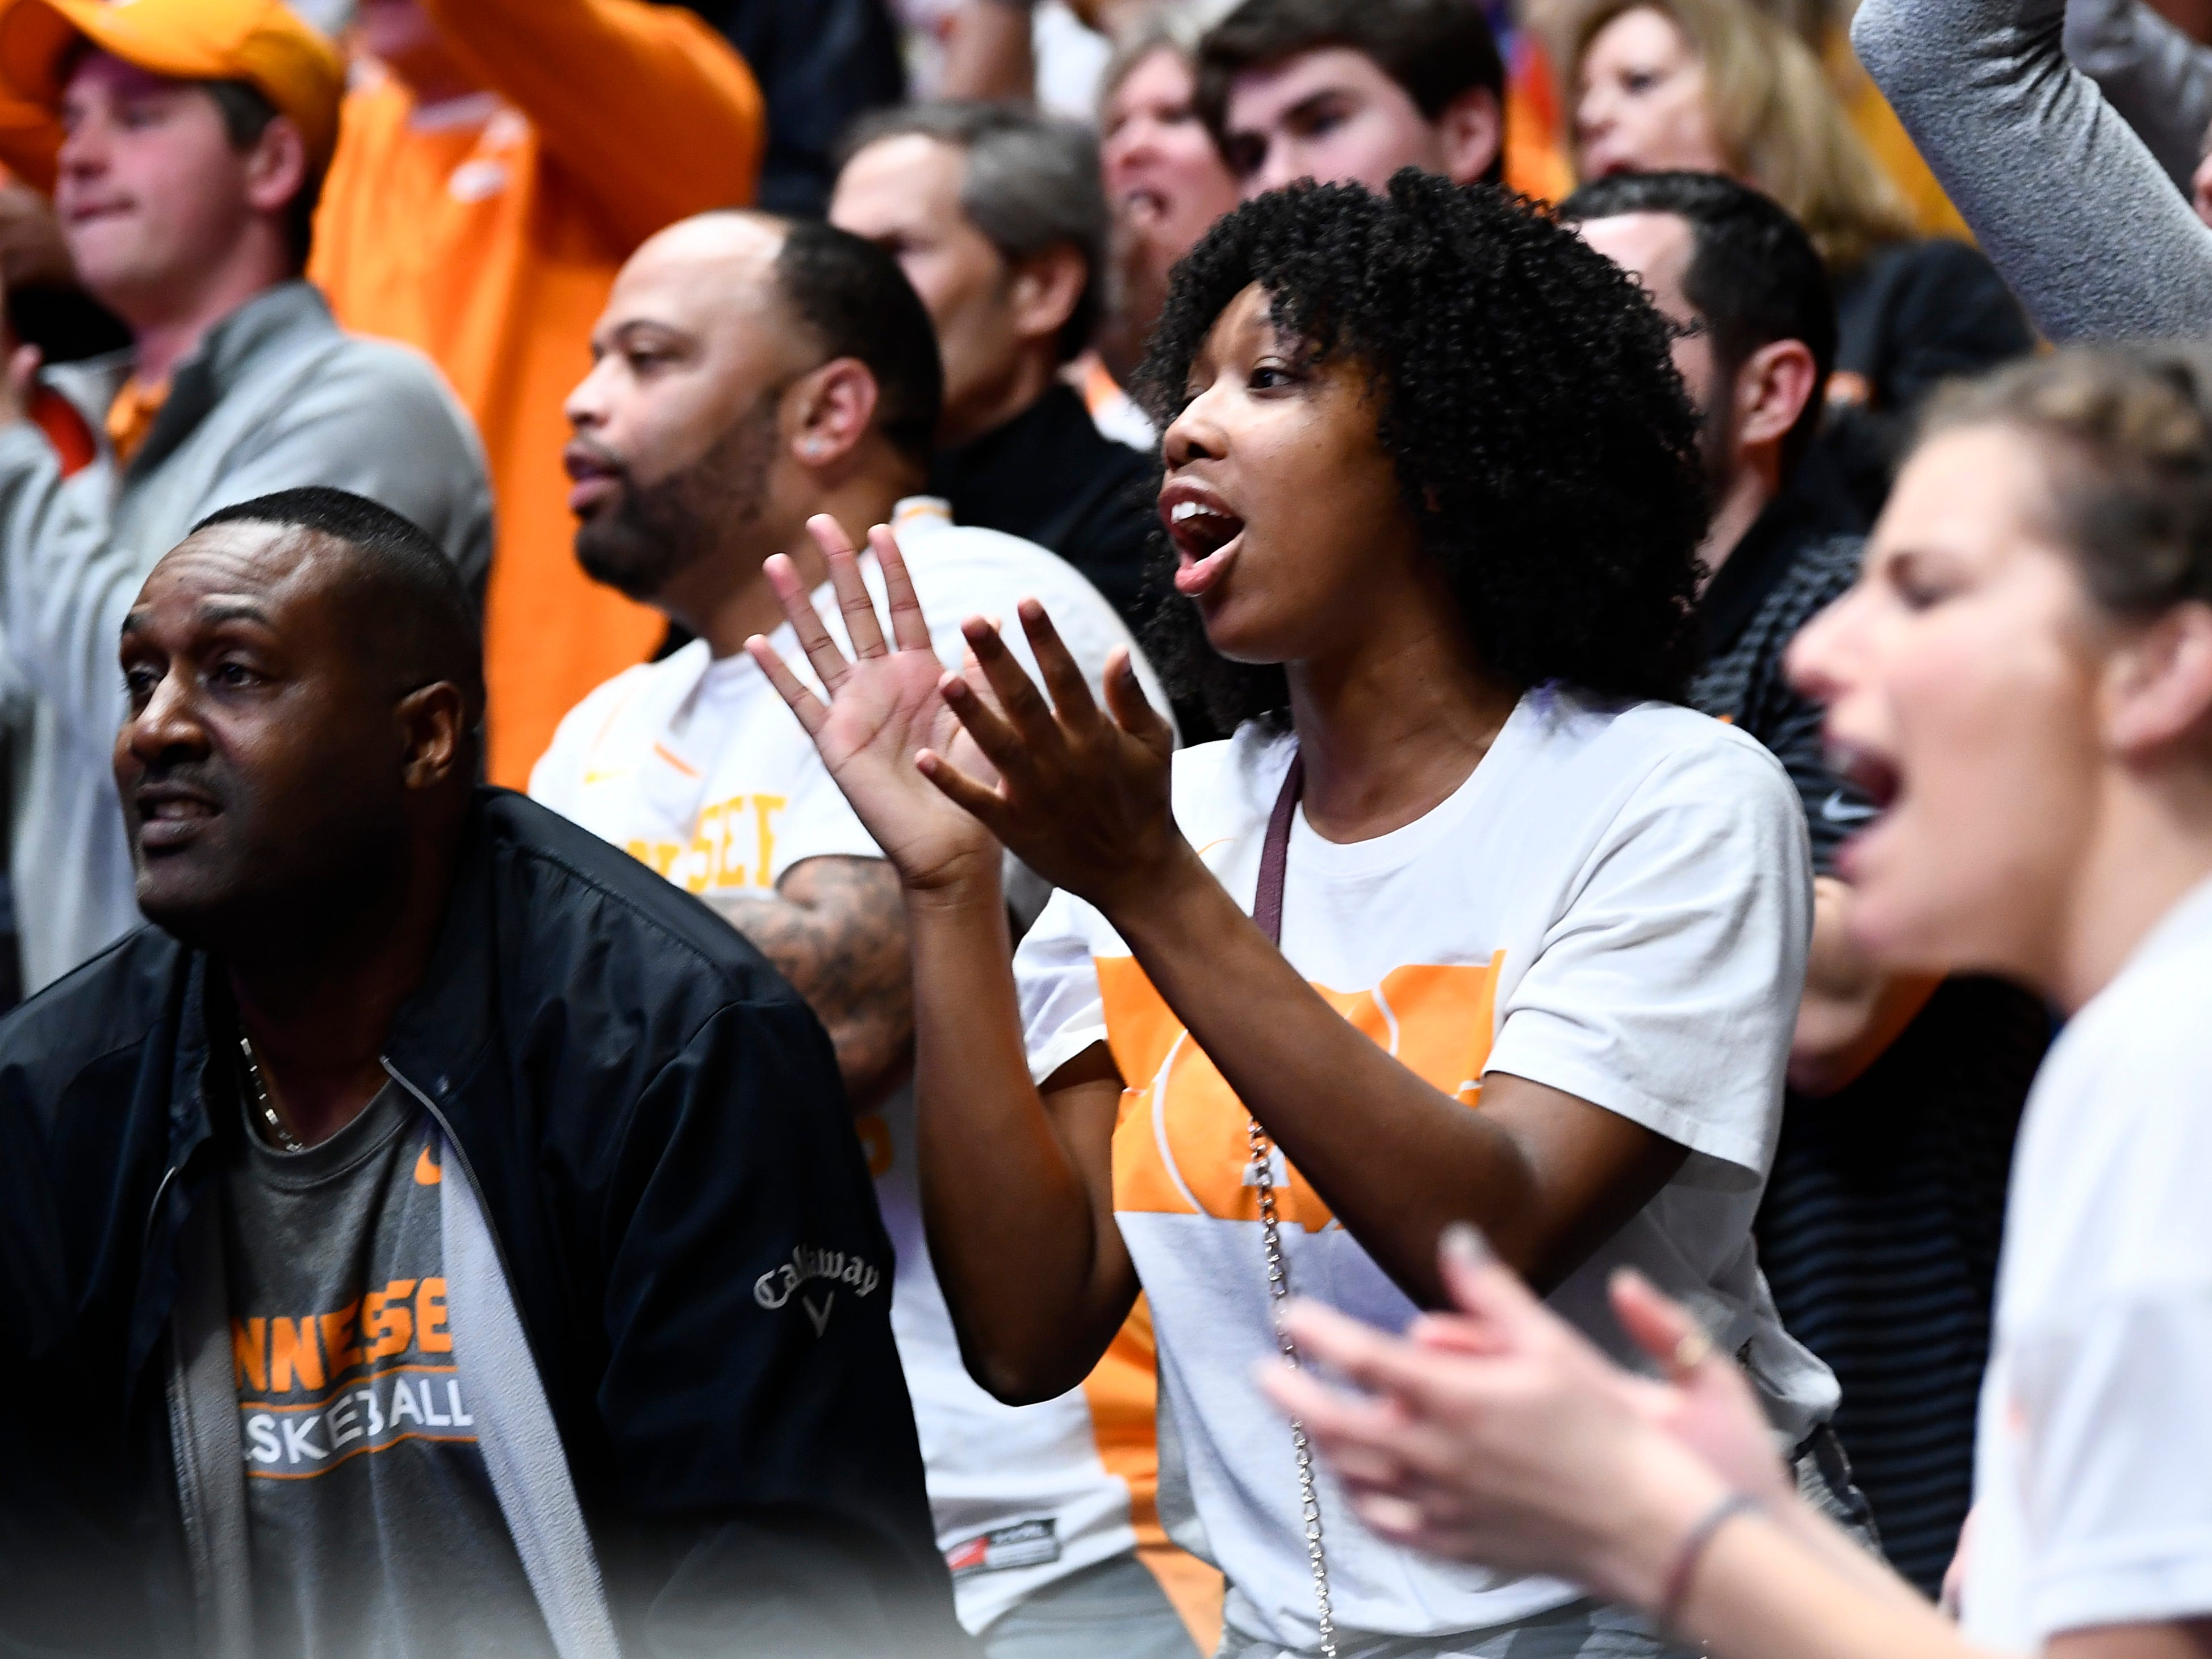 UT fans cheer for the team during the second half of the SEC Men's Basketball Tournament game against Mississippi State at Bridgestone Arena in Nashville, Tenn., Friday, March 15, 2019.